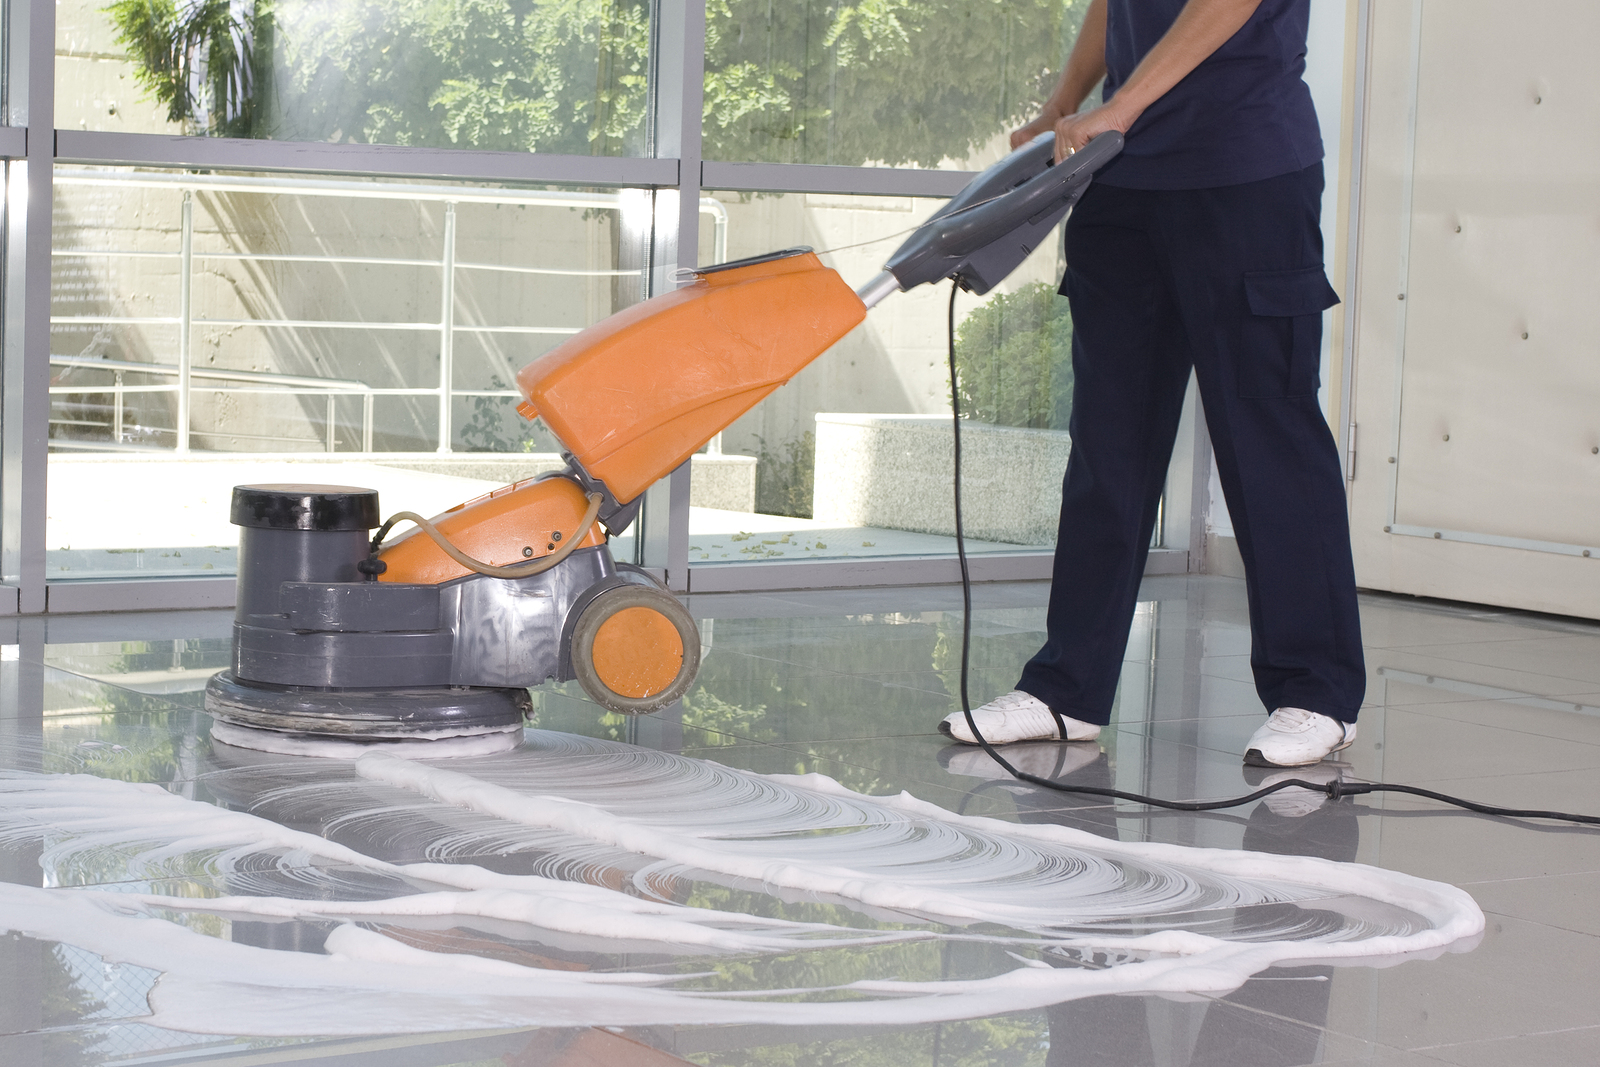 Questions To Ask Before Cleaning Floors